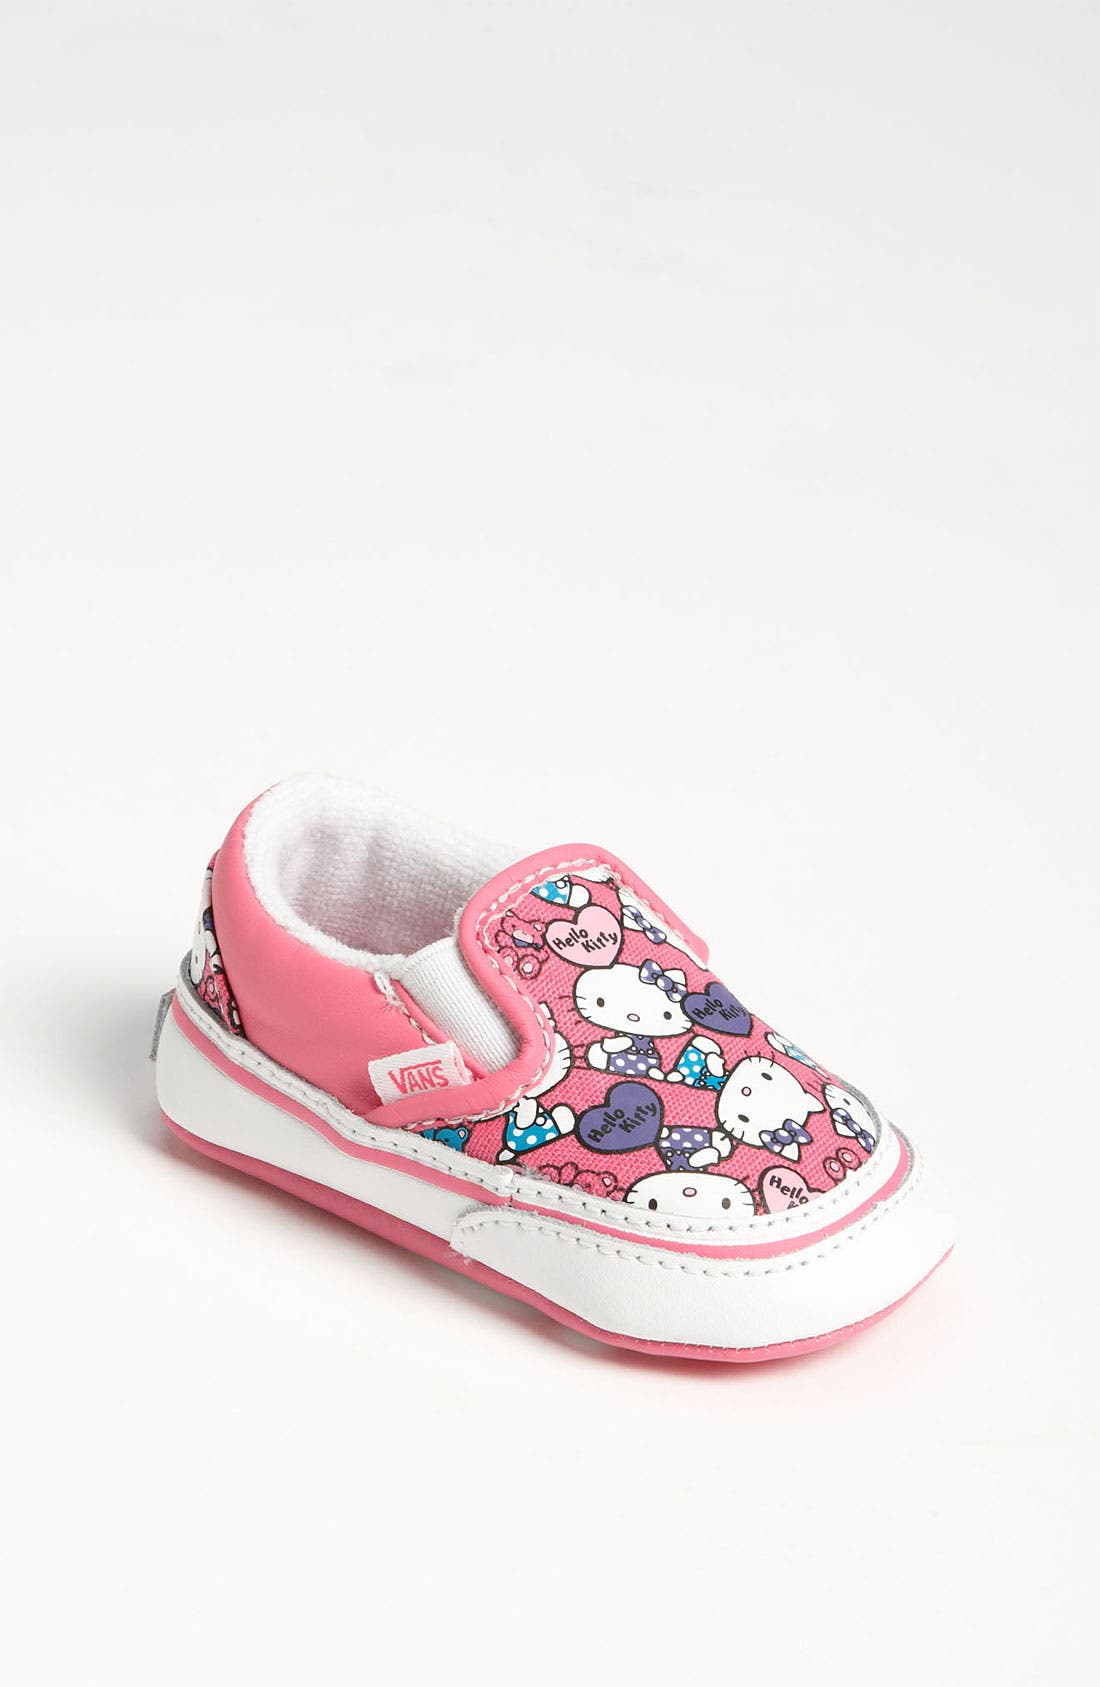 Alternate Image 1 Selected - Vans 'Classic - Hello Kitty®' Crib Shoe (Infant)